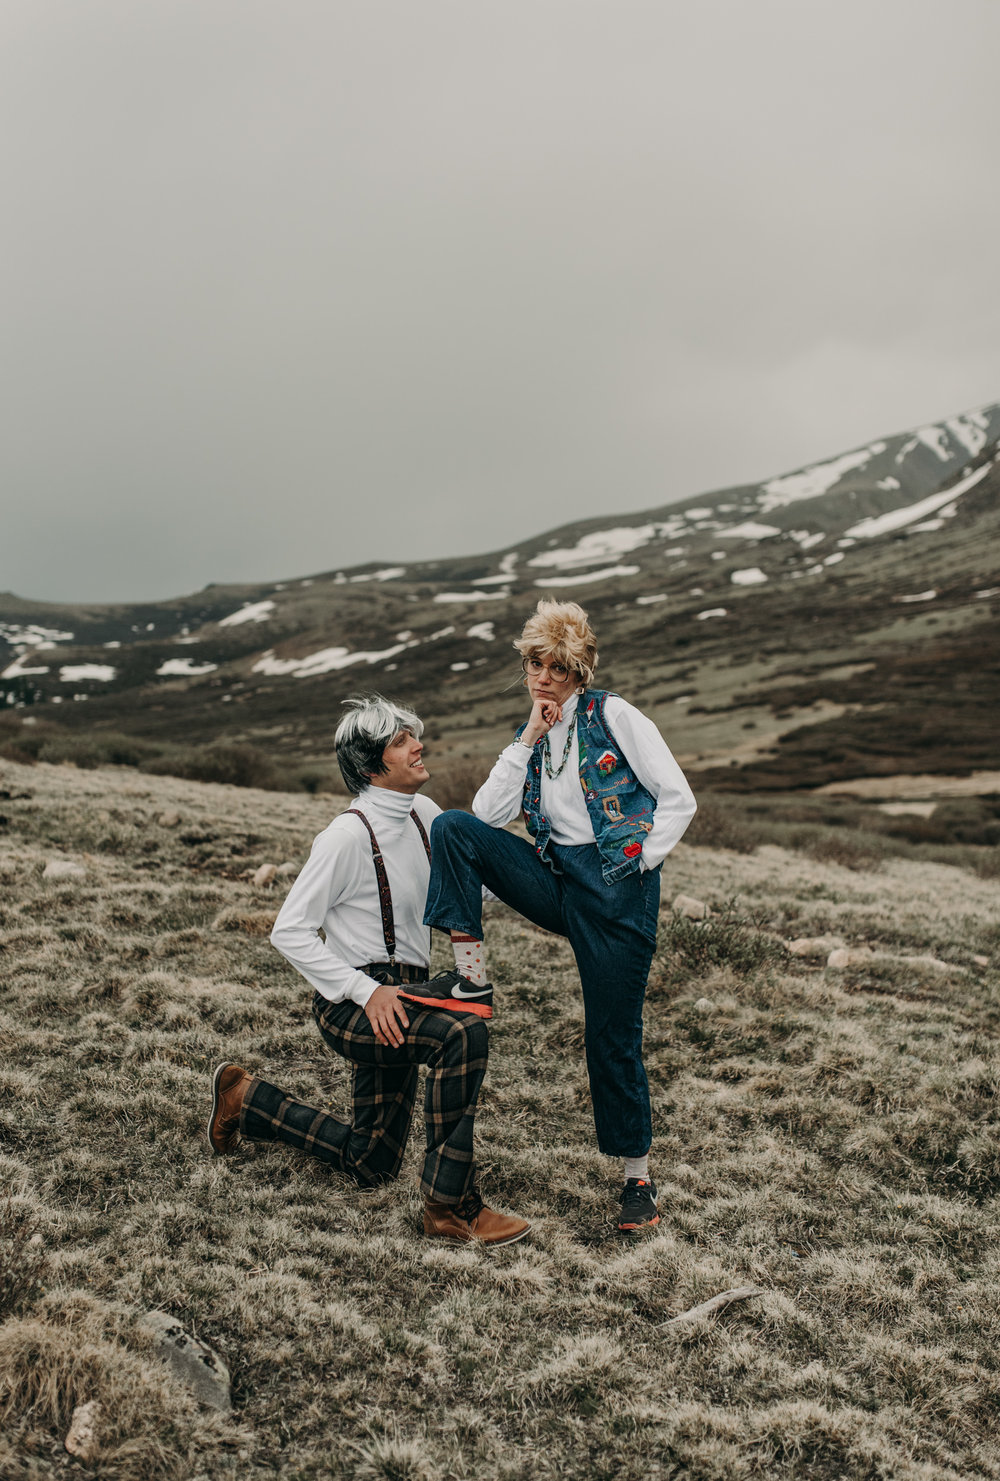 Wedding photographer in Georgetown, Colorado